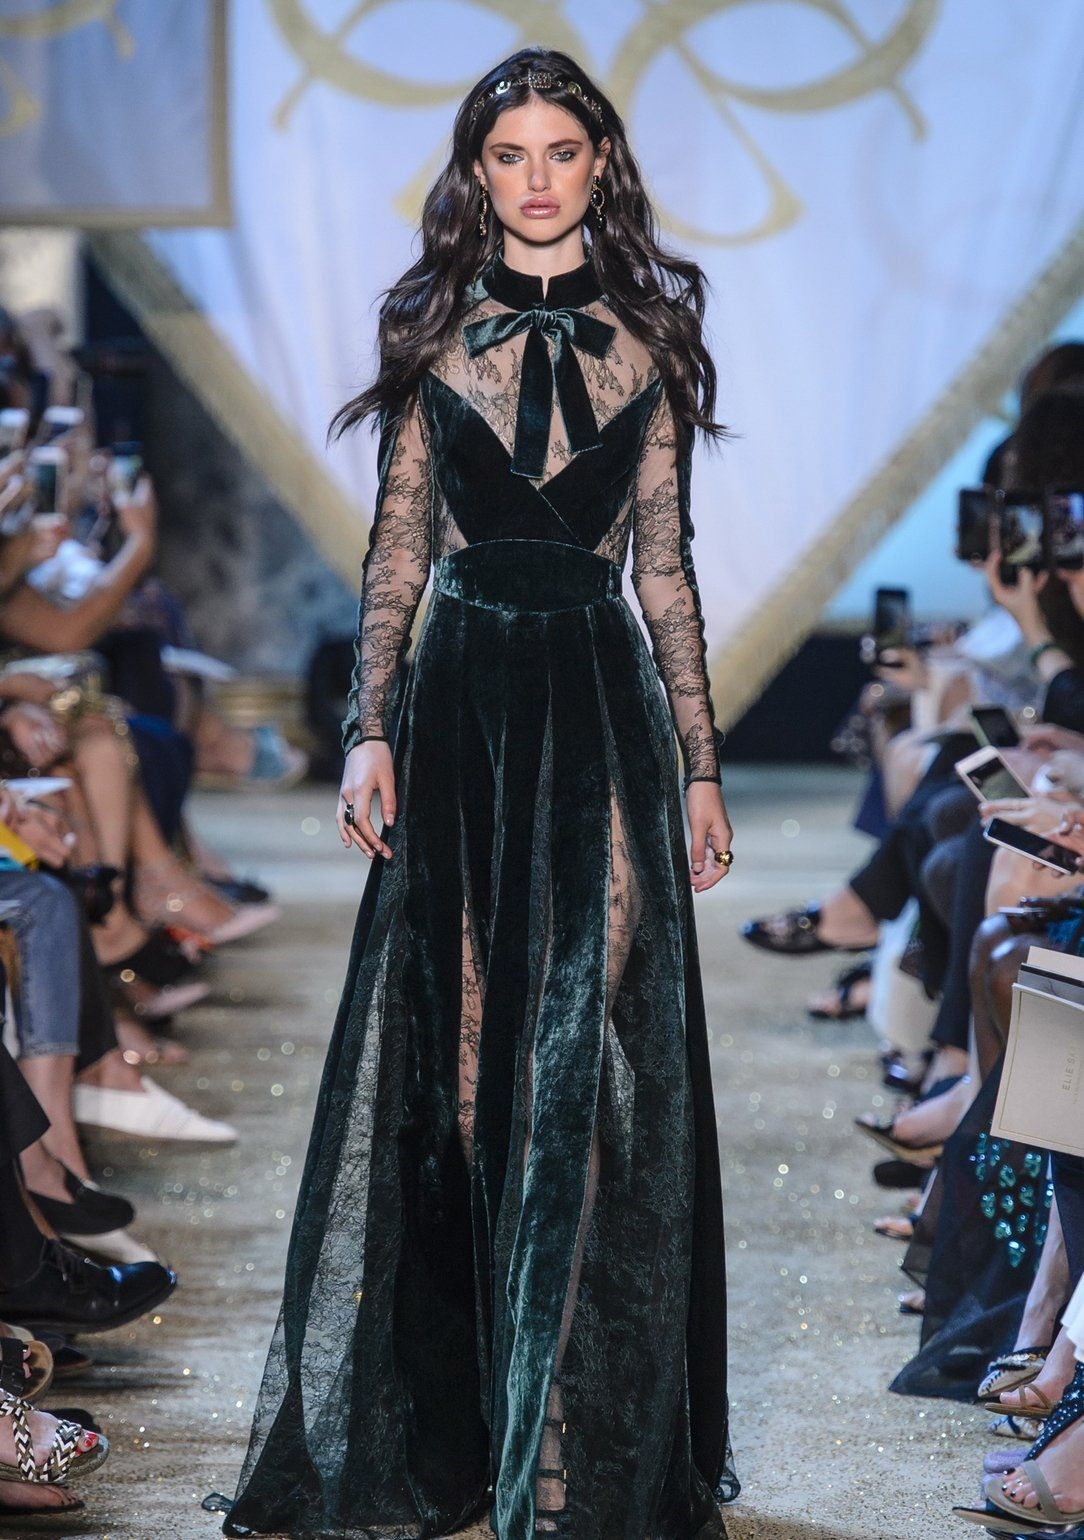 Exceptionnel Elie Saab Haute Couture Herbst/Winter 2017/18 | Elie saab fall  VO26